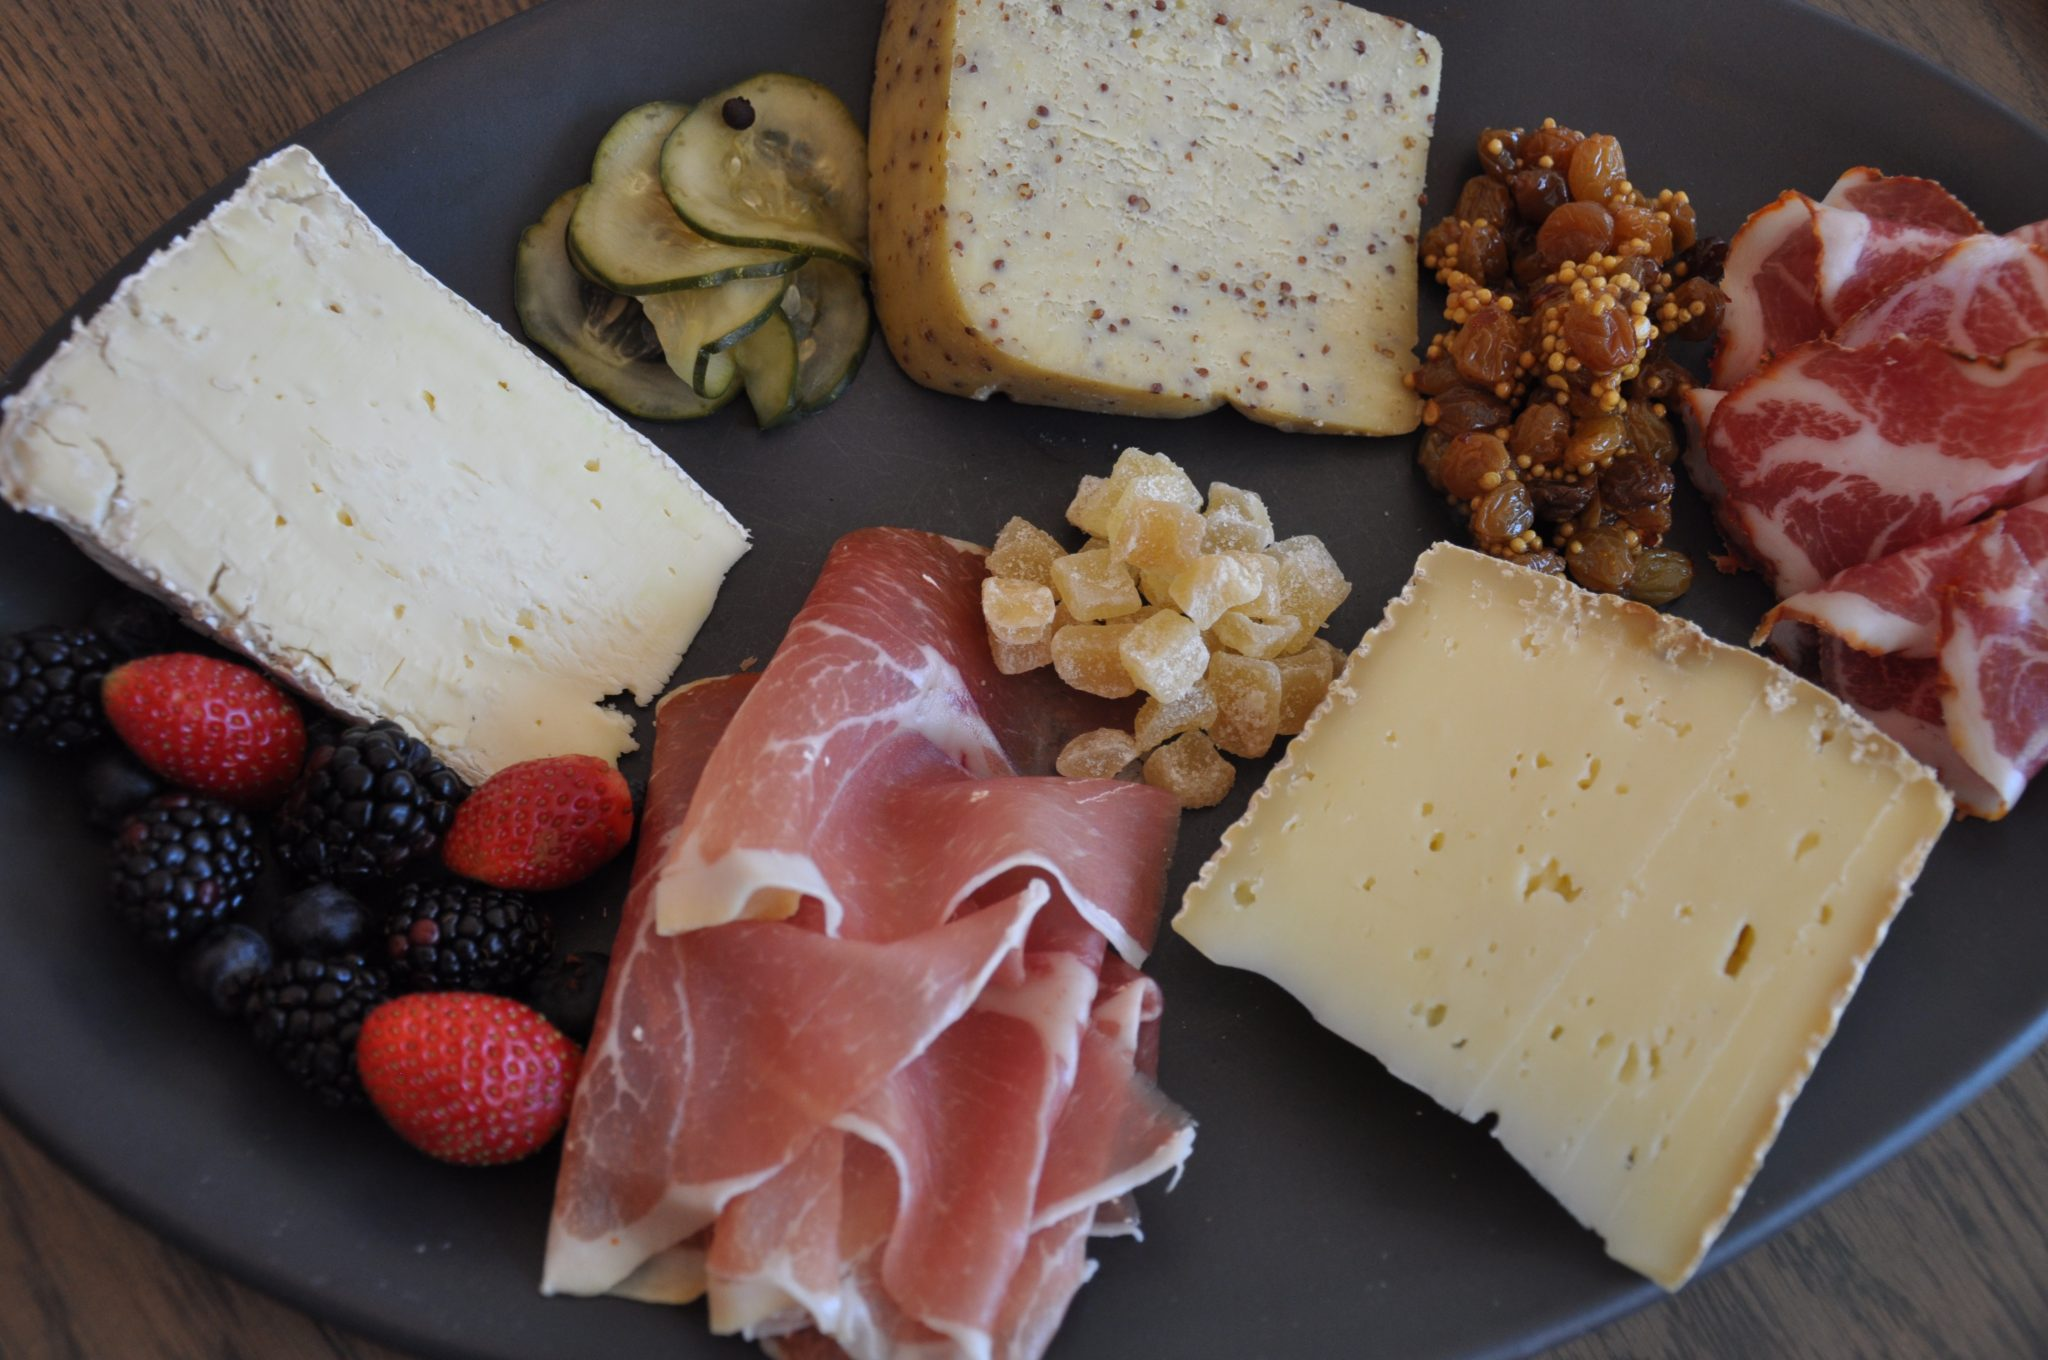 Charcuterie board with cheese, fruit, meat, pickles, raisins and dried fruit